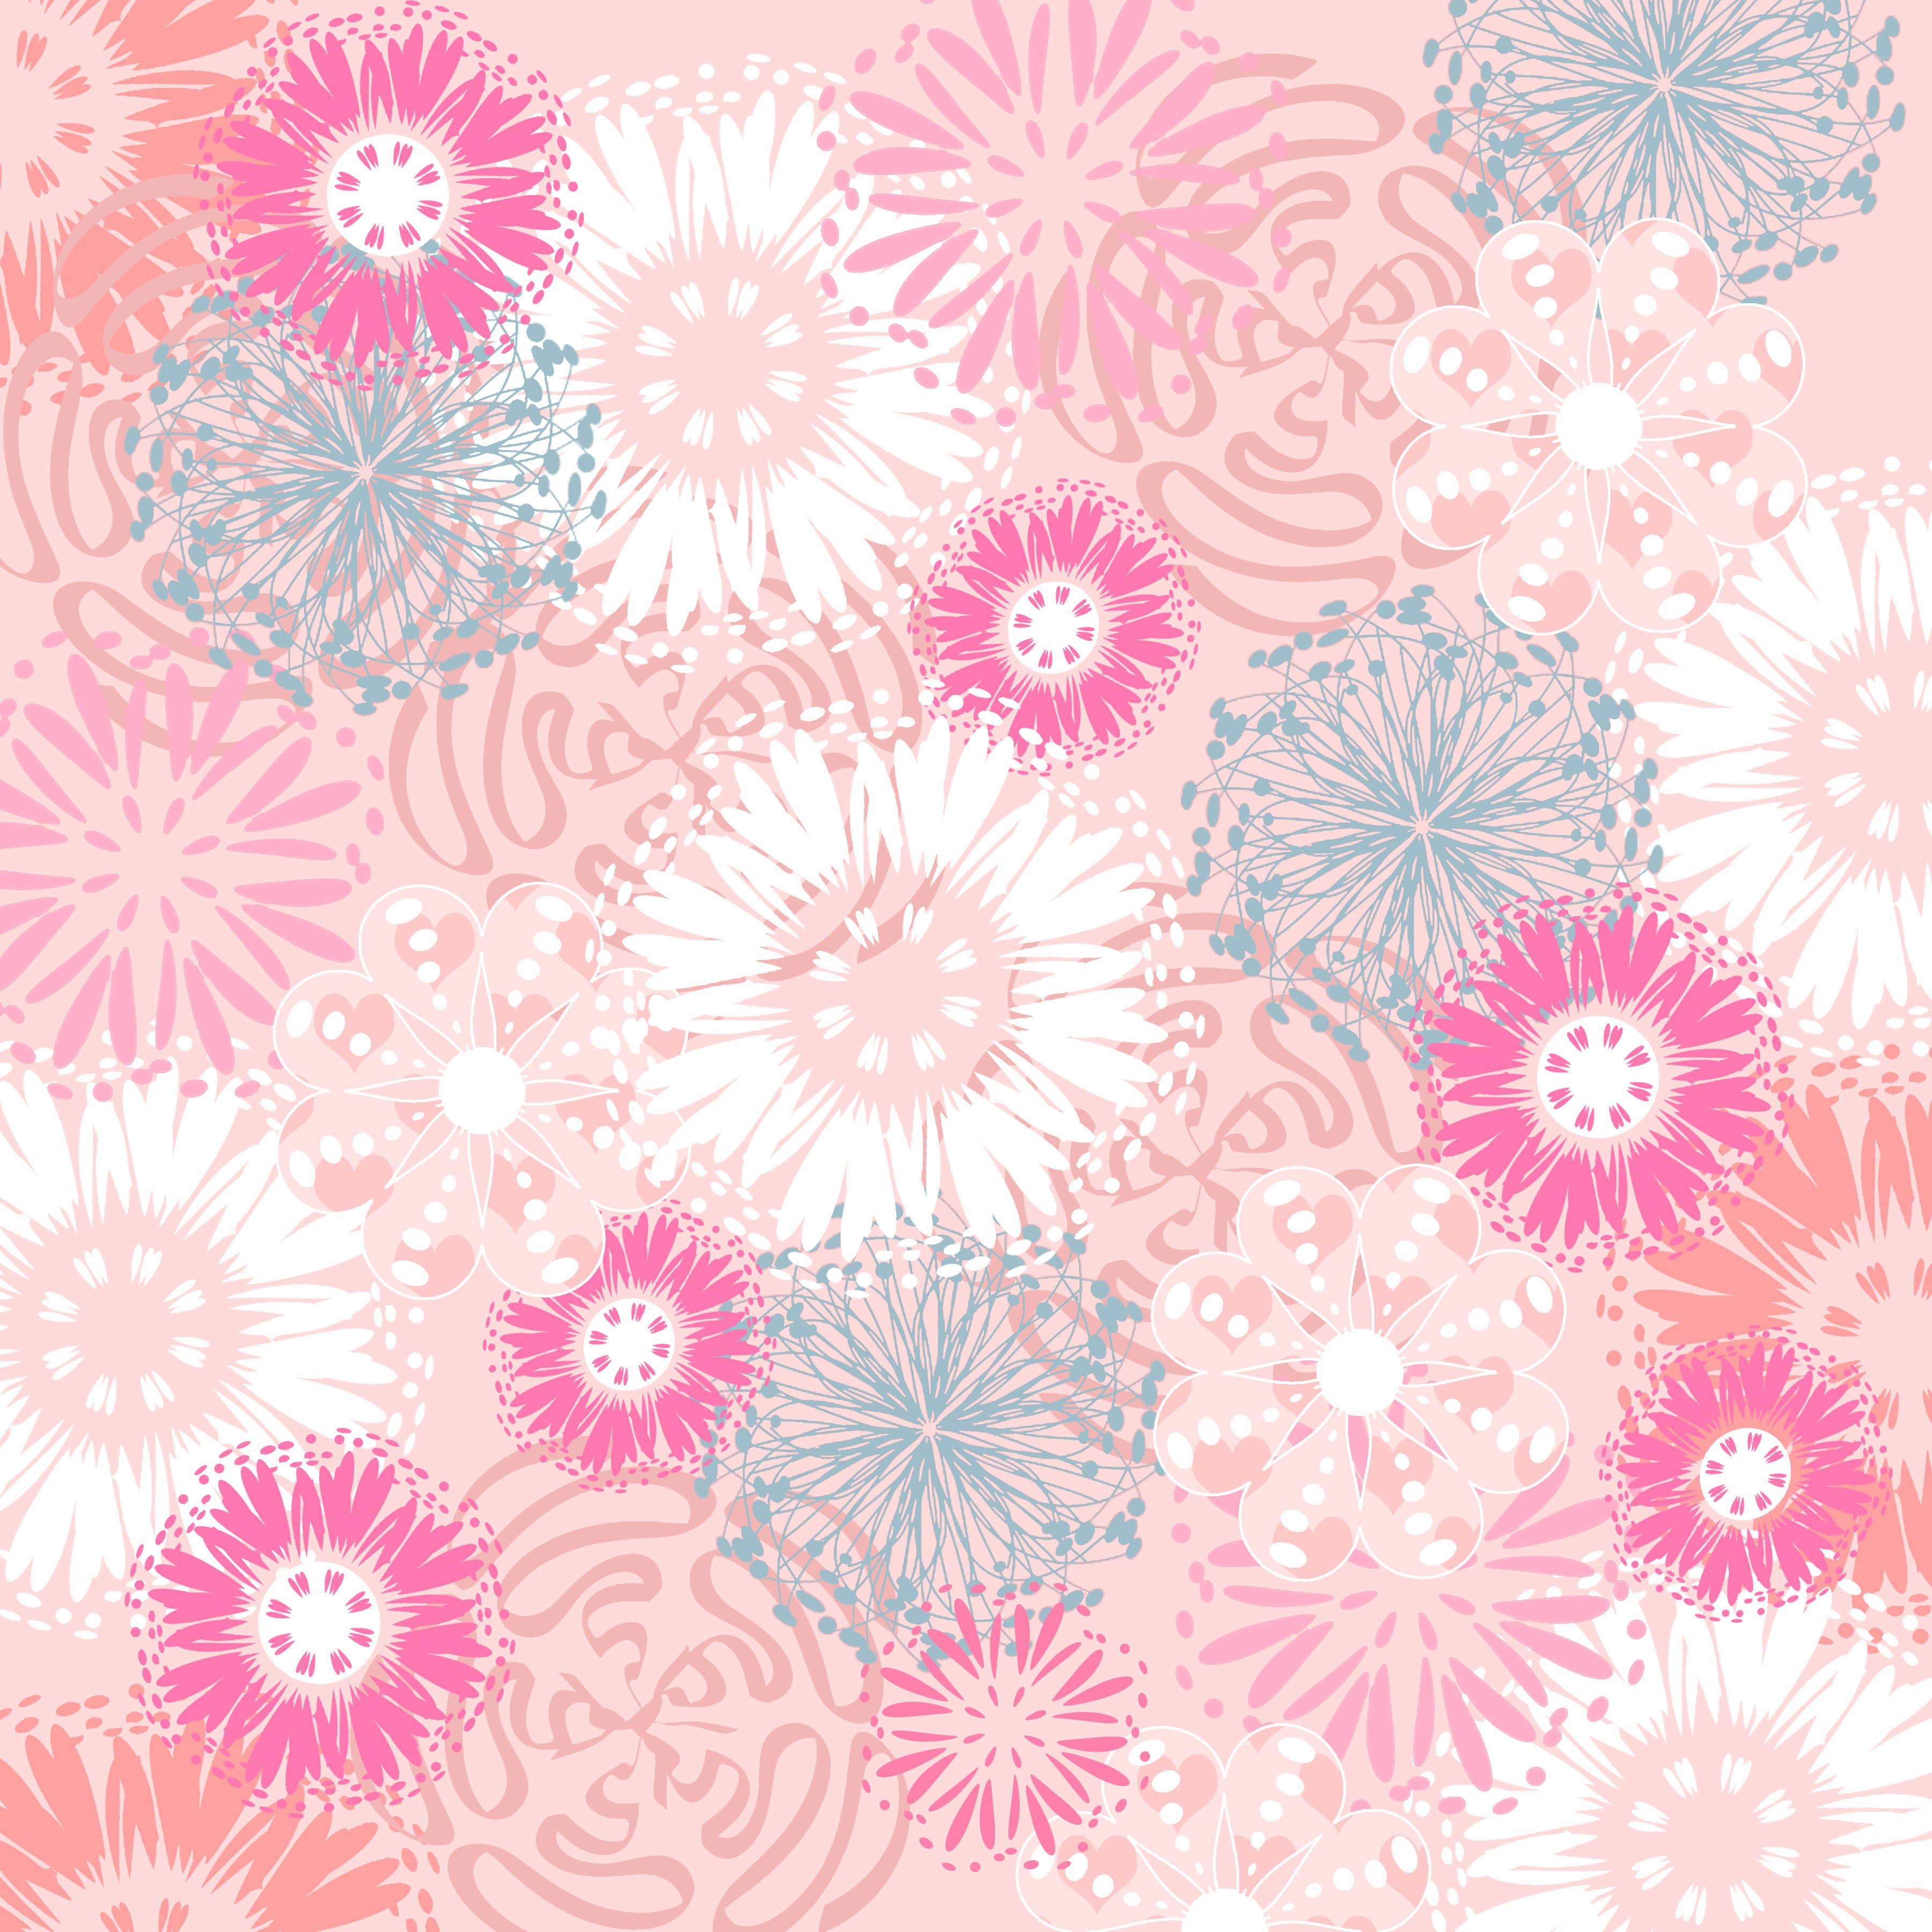 Free+Printable+Scrapbook+Paper | Scrapbook Paper | Printable - Free Printable Backgrounds